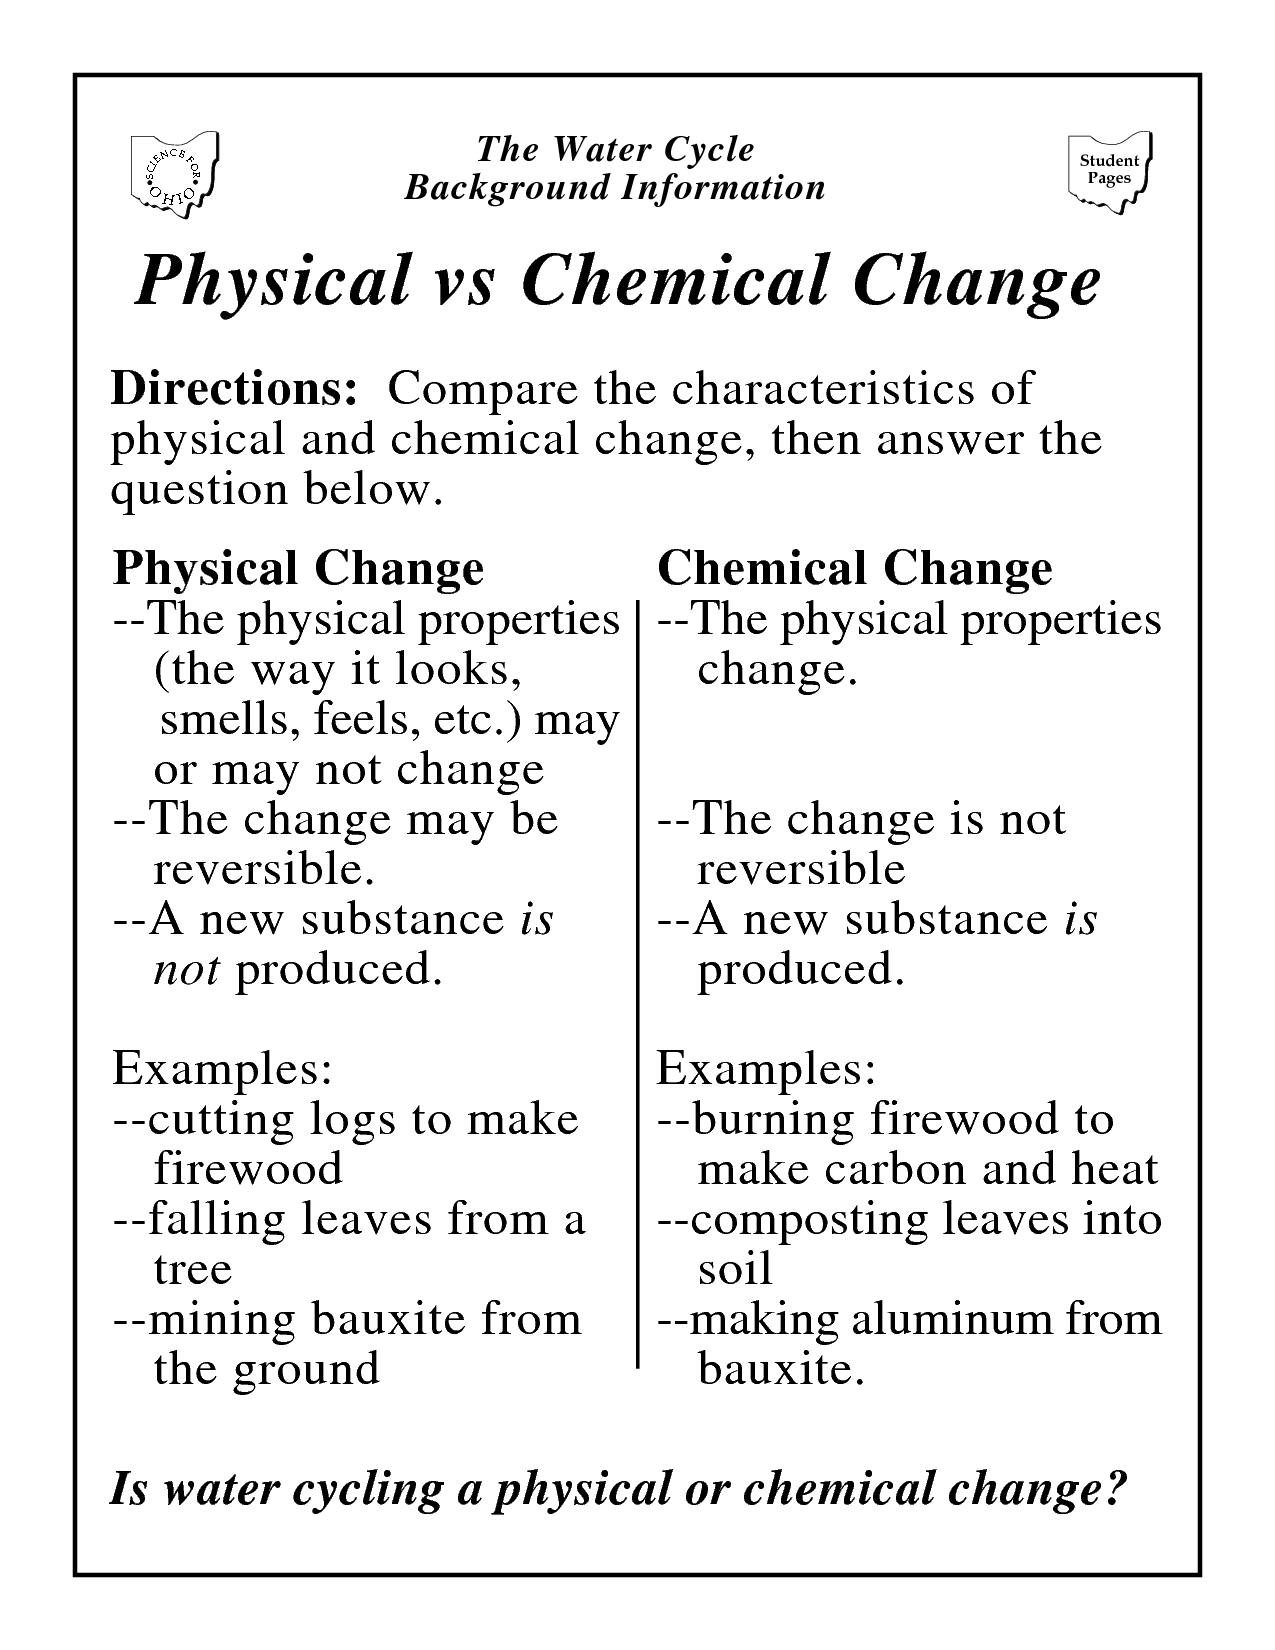 Physical Vs Chemical Change With Images